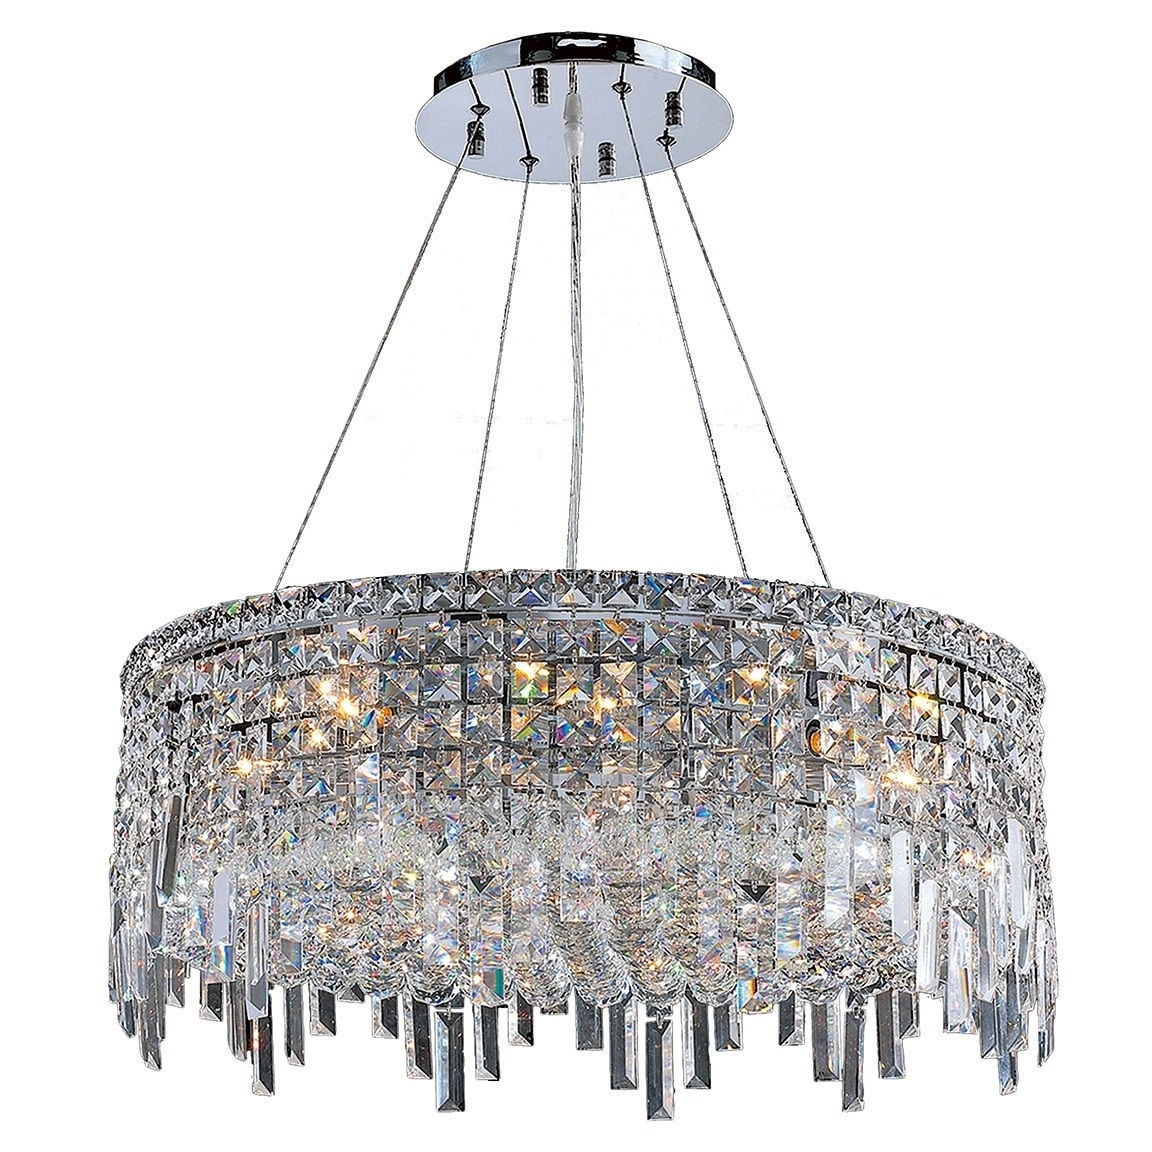 Glam art deco style collection 12 light chrome finish crystal round glam art deco style collection 12 light chrome finish crystal round flush mount chandelier 24 d x 105 h large free shipping today overstock arubaitofo Gallery